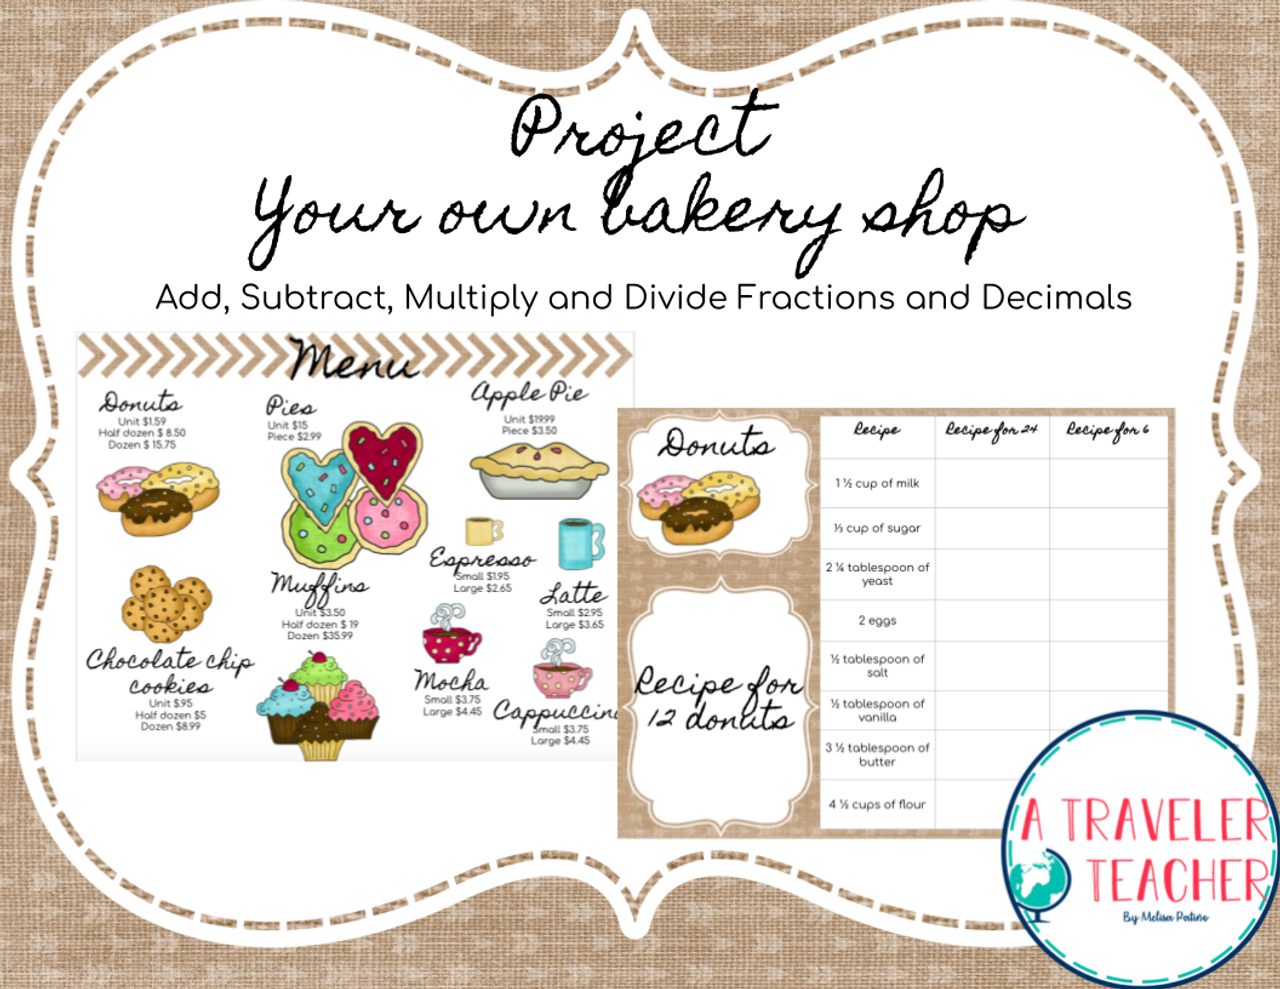 Create Your own Bakery Shop. Fractions and Decimals.